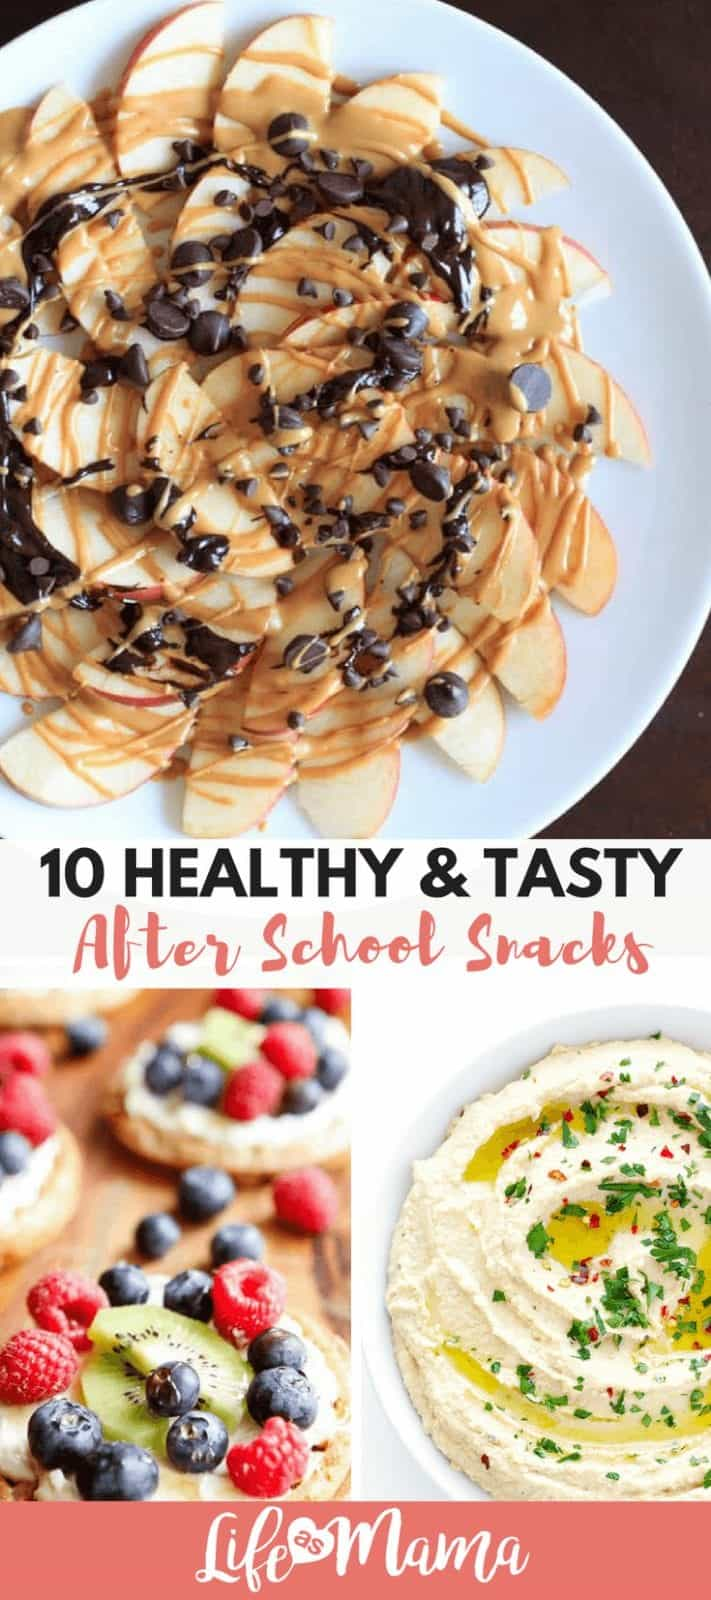 10 Healthy And Tasty After School Snacks